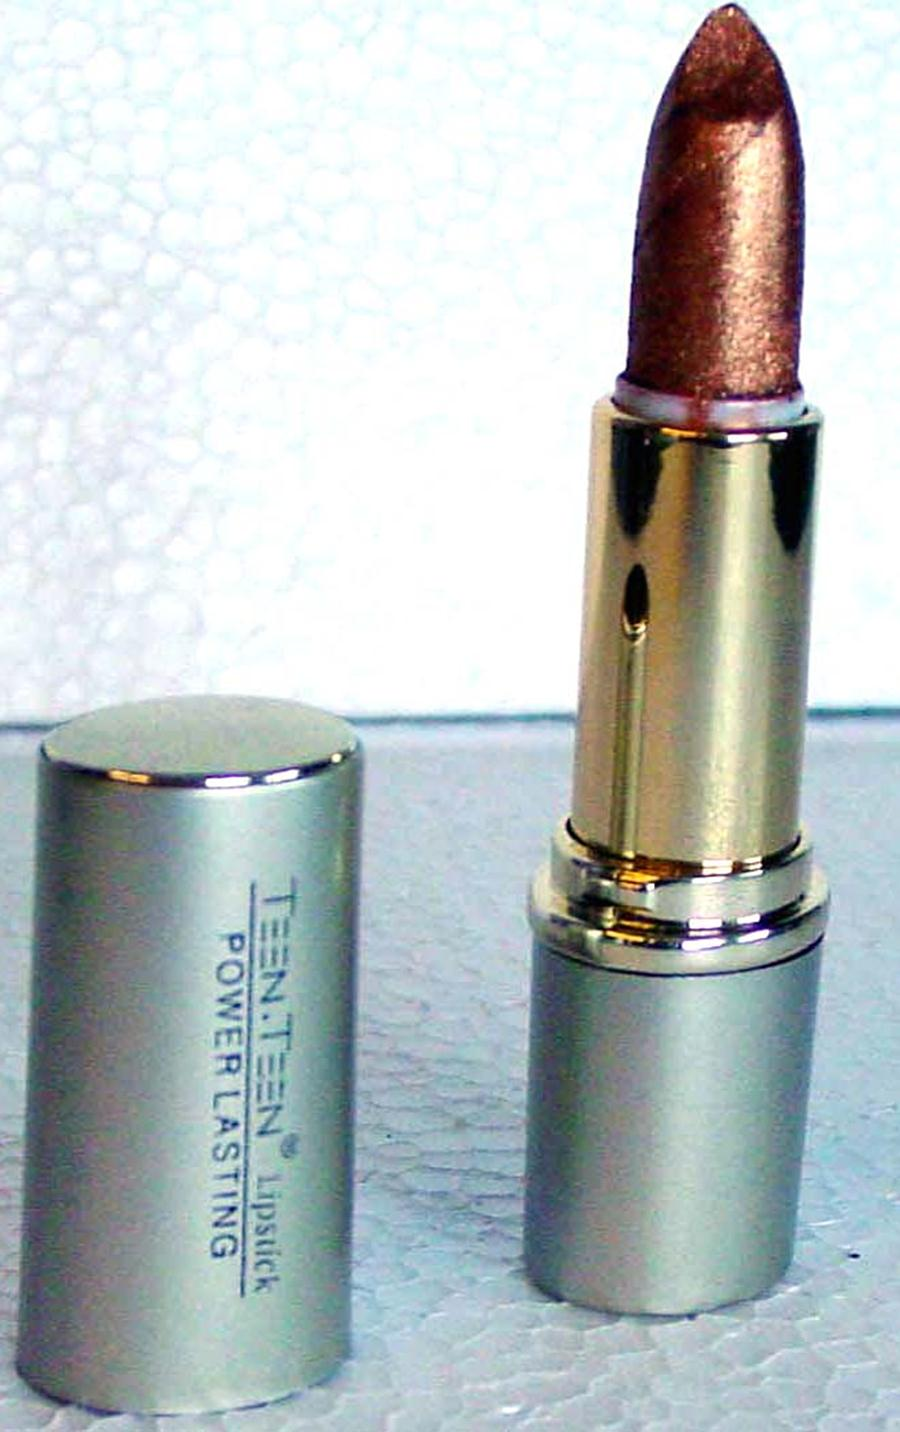 Beam Splash Of Sheer Shimmer Lipstick 8